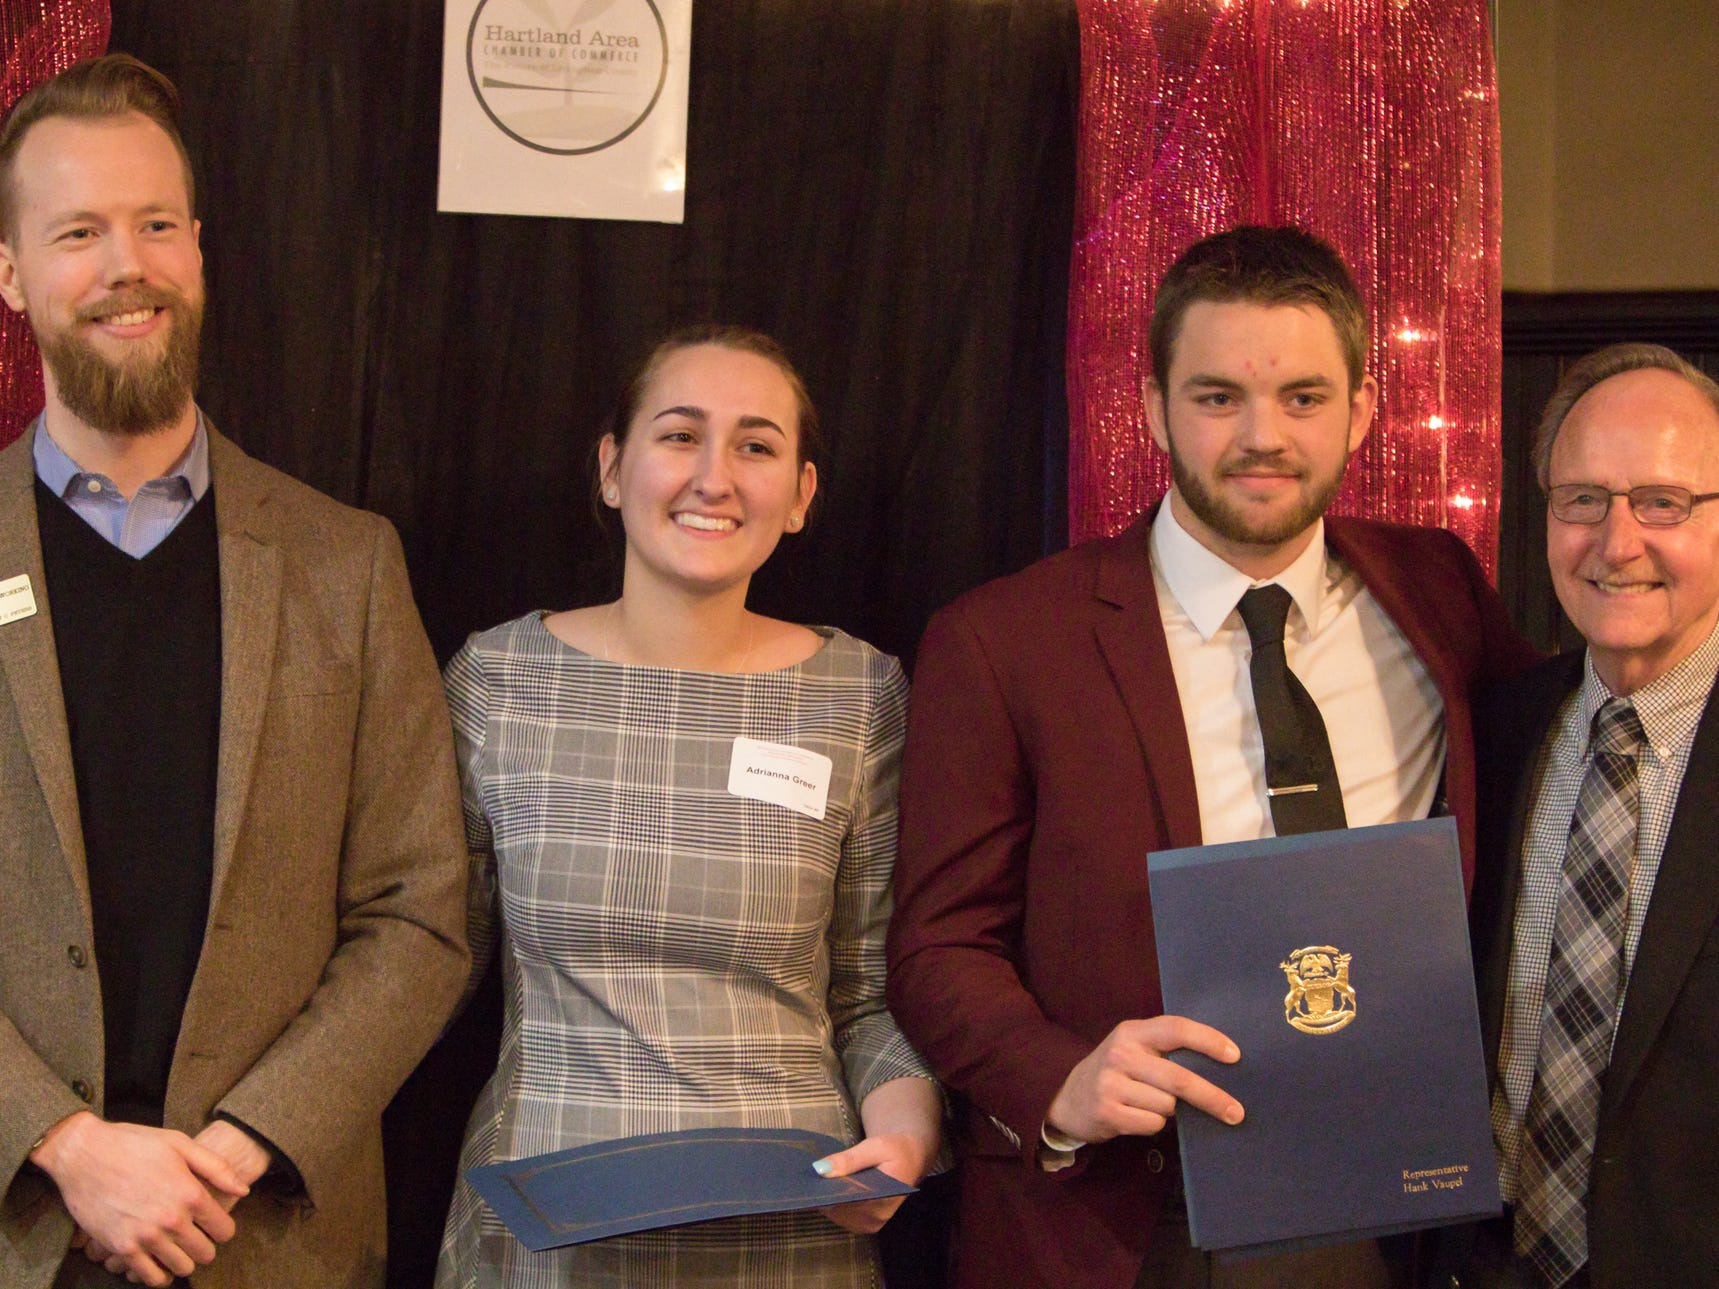 Griffin Working from U.S. Sen. Gary Peters' office, at left, and Rep. Hank Vaupel, right, present recognition to scholarship recipients Adrianna Greer and Griffin Neuer at the Hartland Chamber awards dinner Thursday, Jan. 31, 2019.